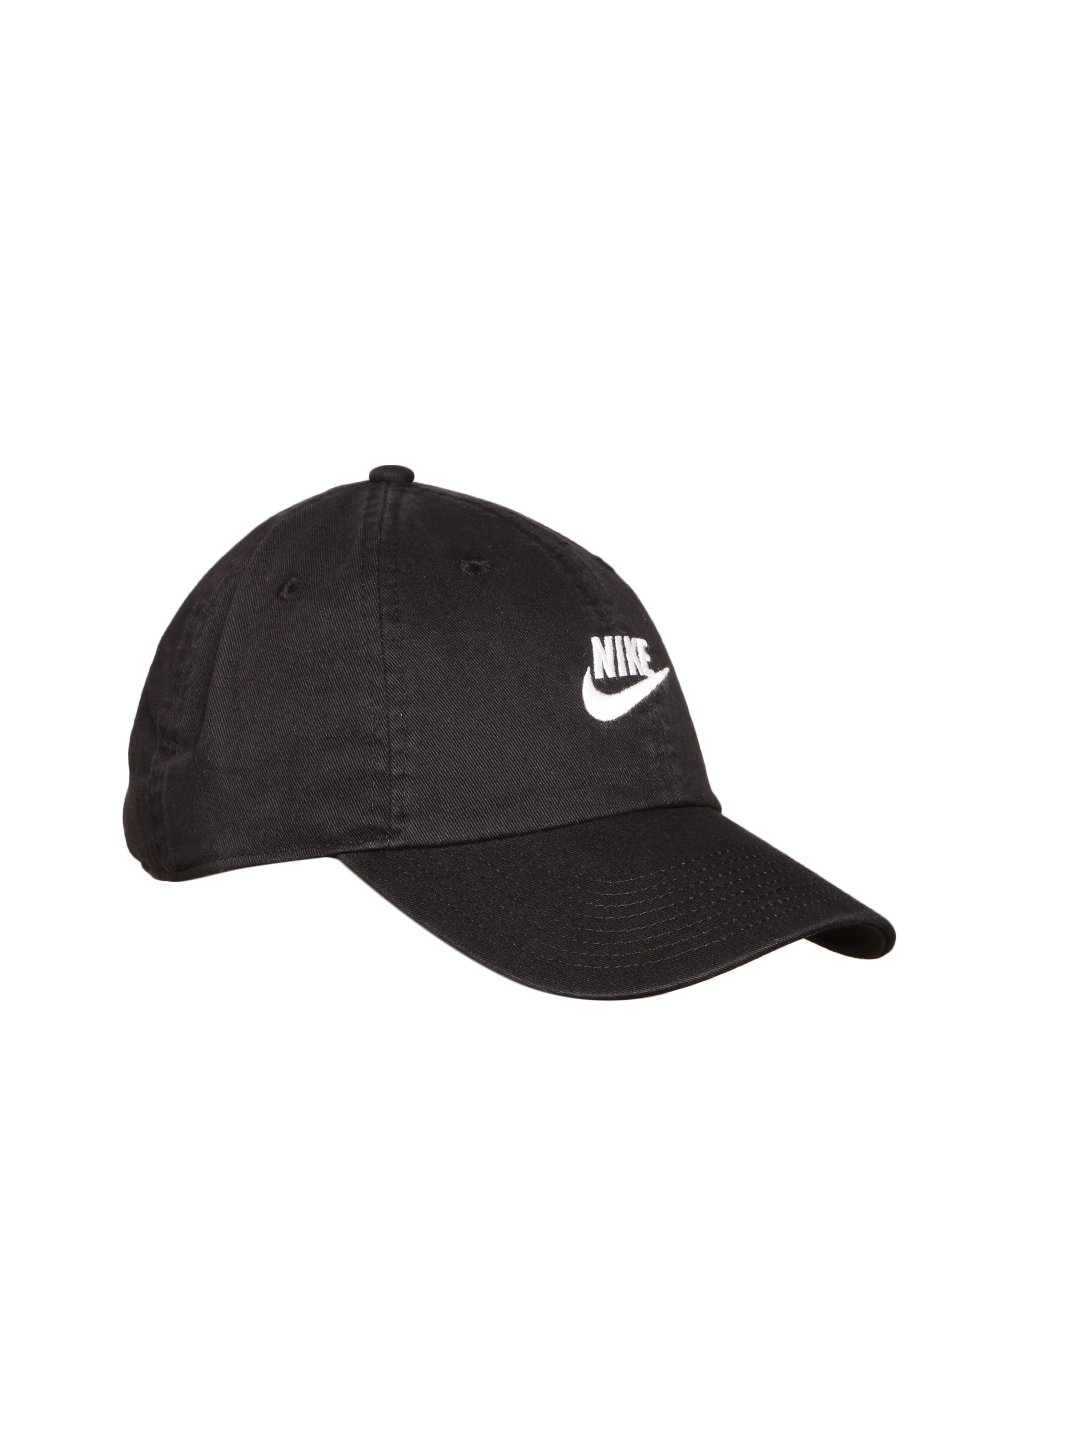 5dbe61a59f30d Buy Nike Unisex Black NSW H86 Futura Washed Solid Cap - Caps for ...